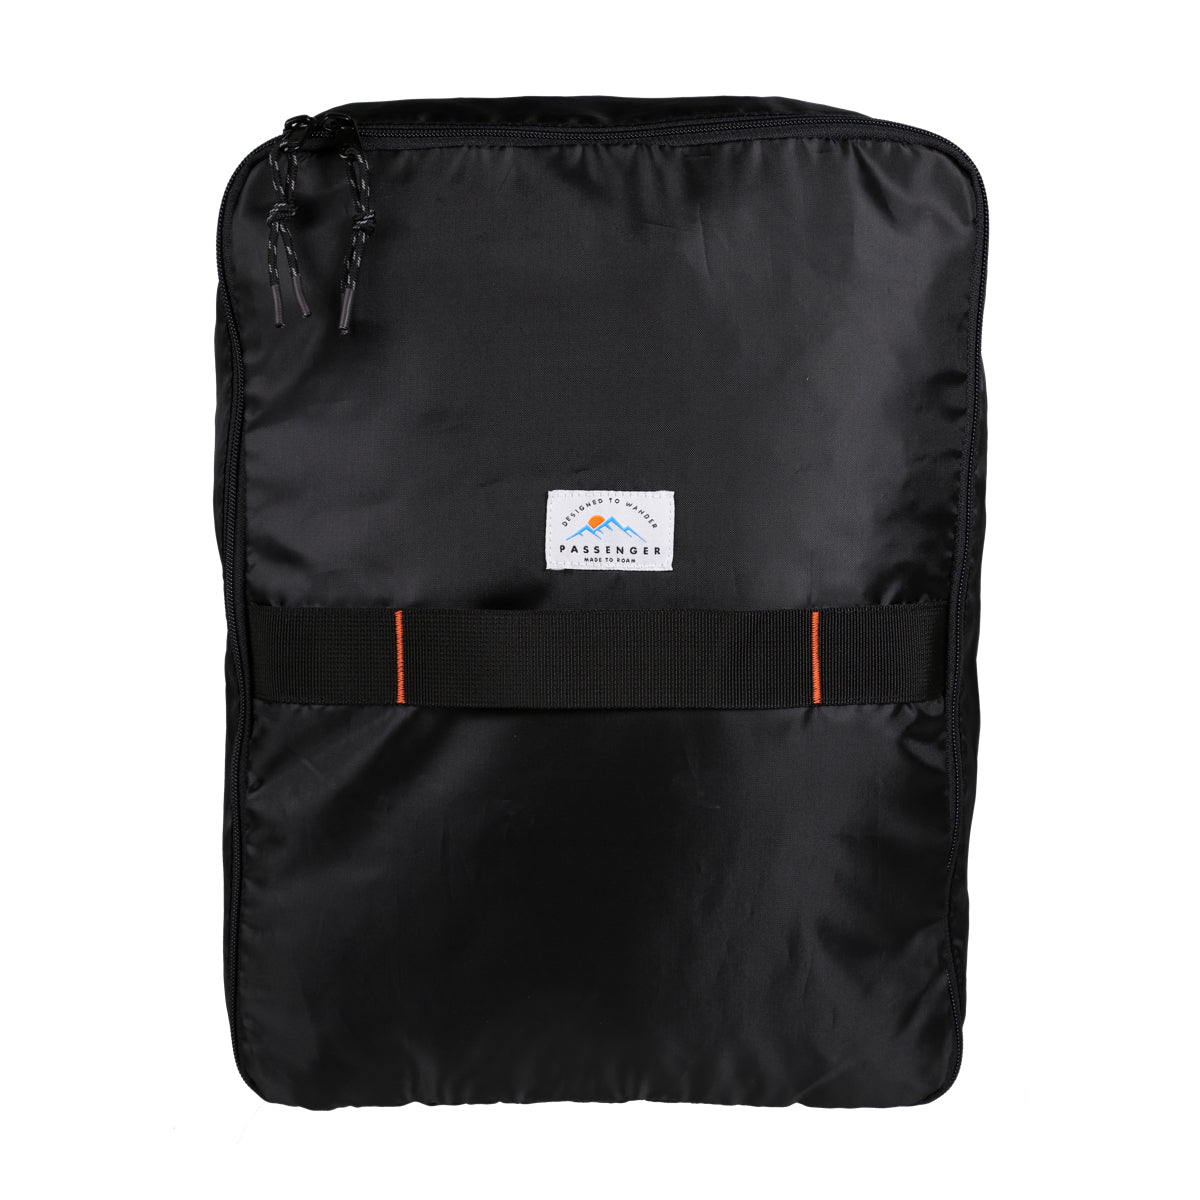 Collective Packing Cube Large - Black image 1